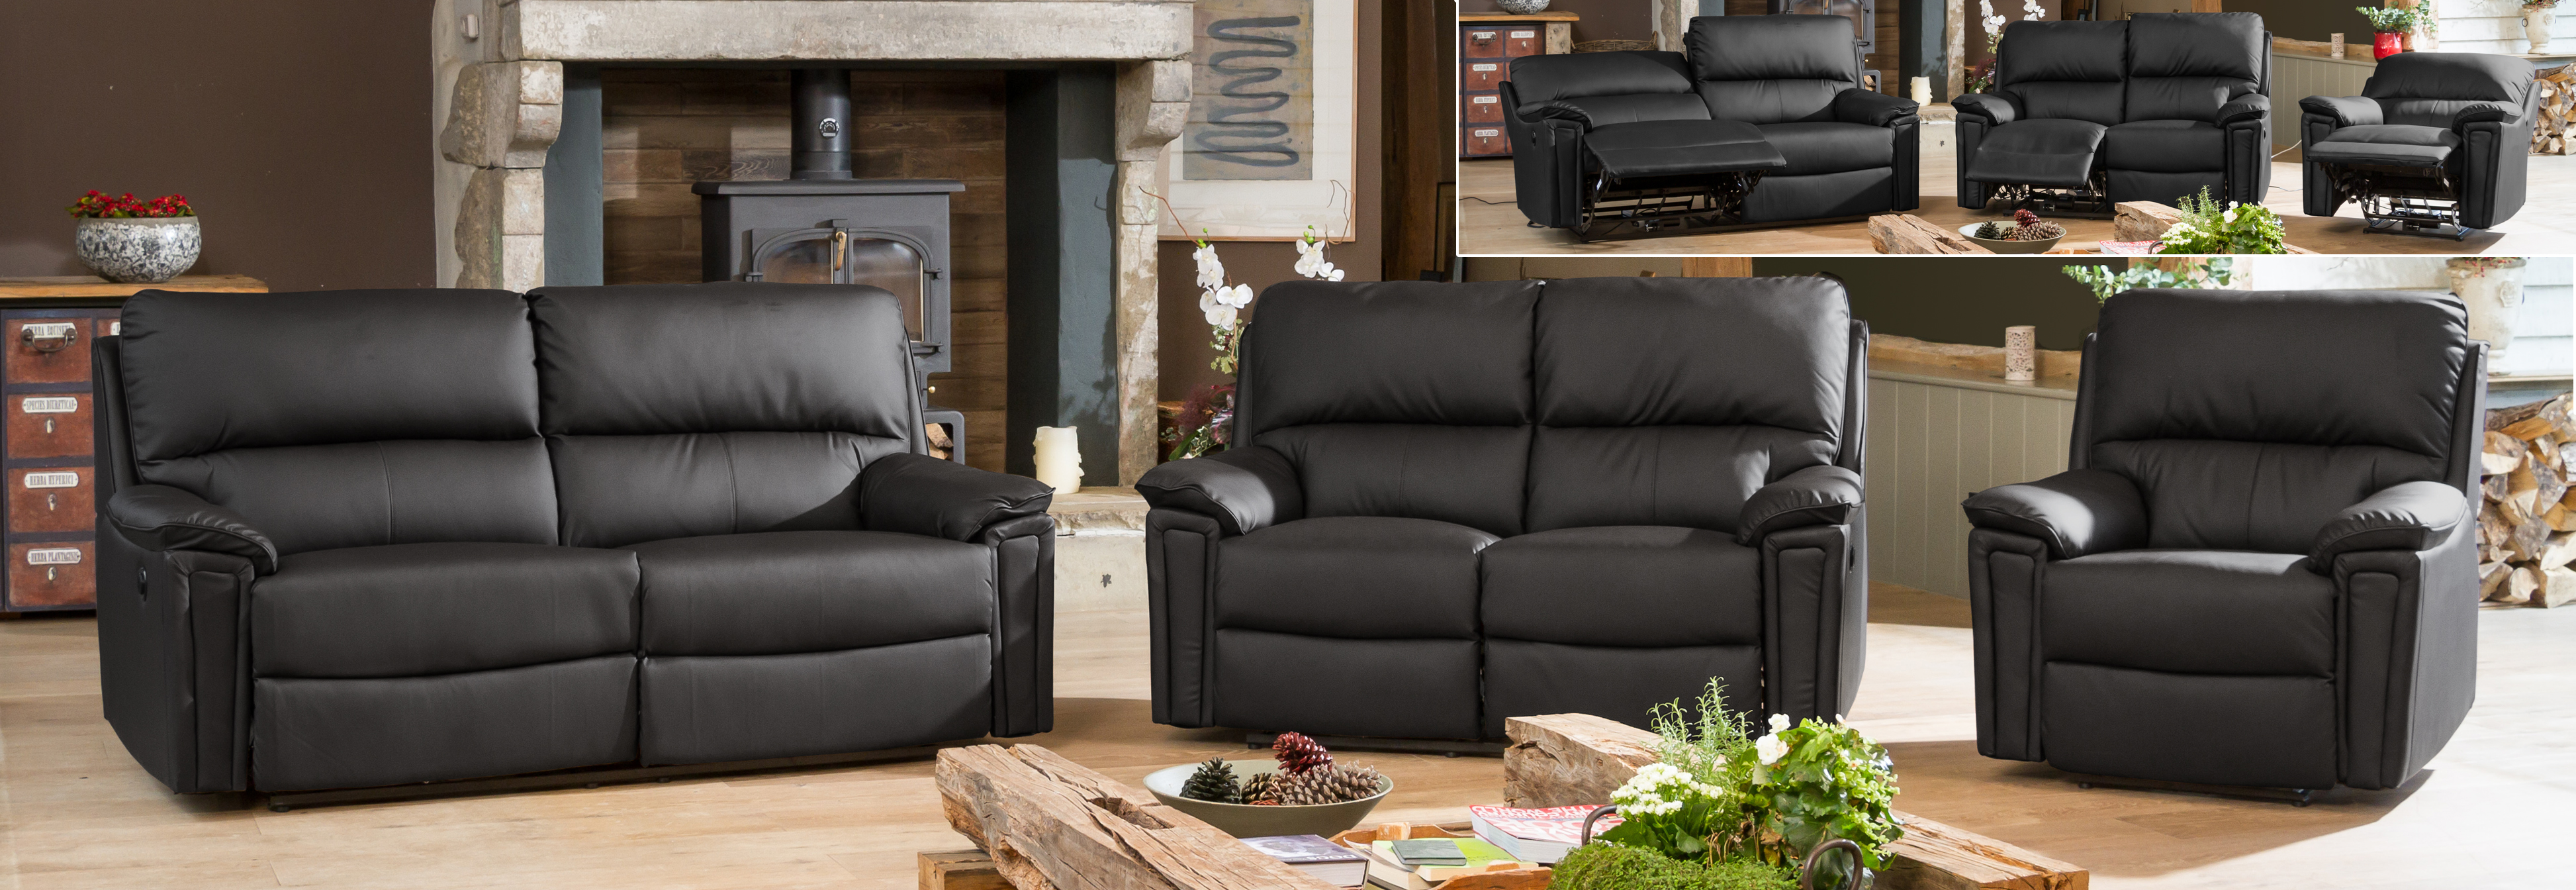 Radstock Electric Reclining Suite black